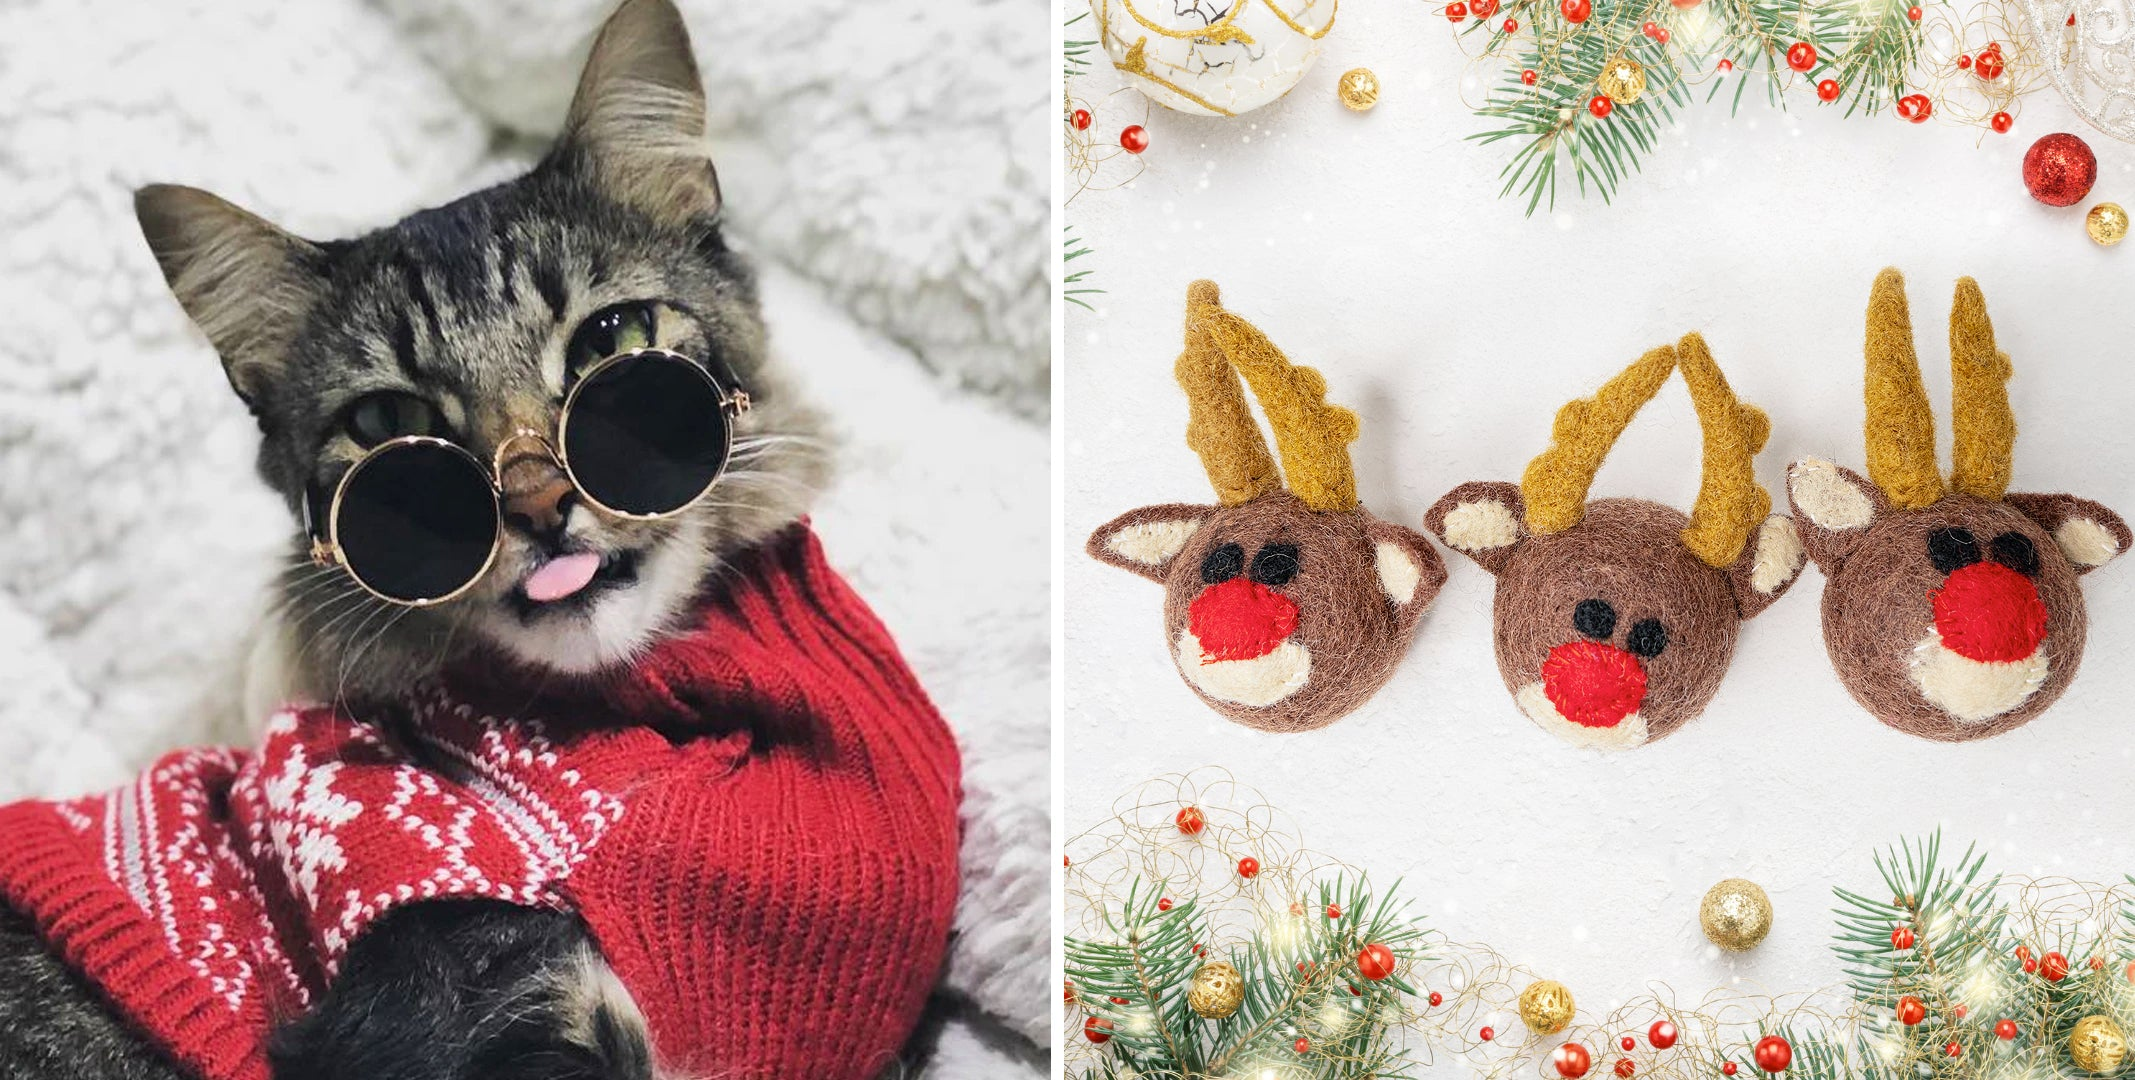 10 Gifts for The Nice (and Naughty) Cat On Your Christmas List